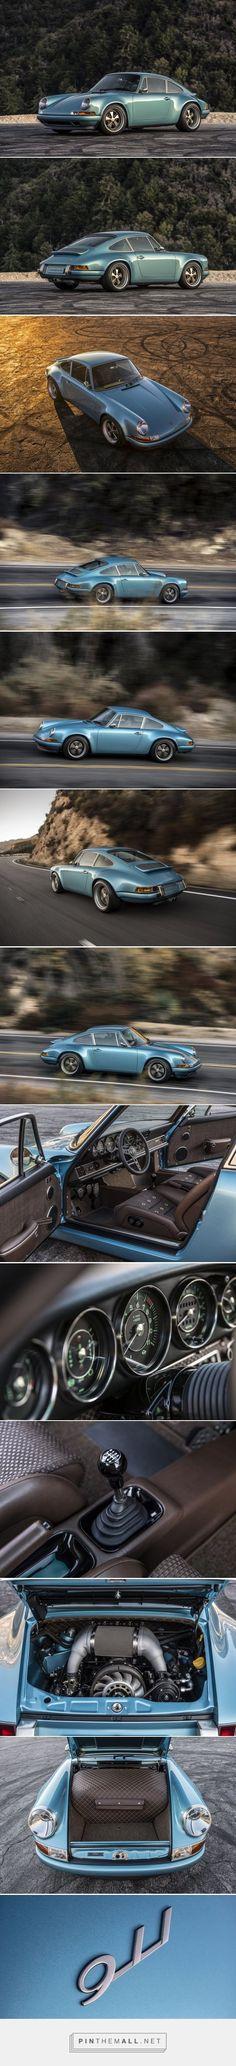 This Restomod Porsche 911 Is Cooler Than Cool #porscesupercar